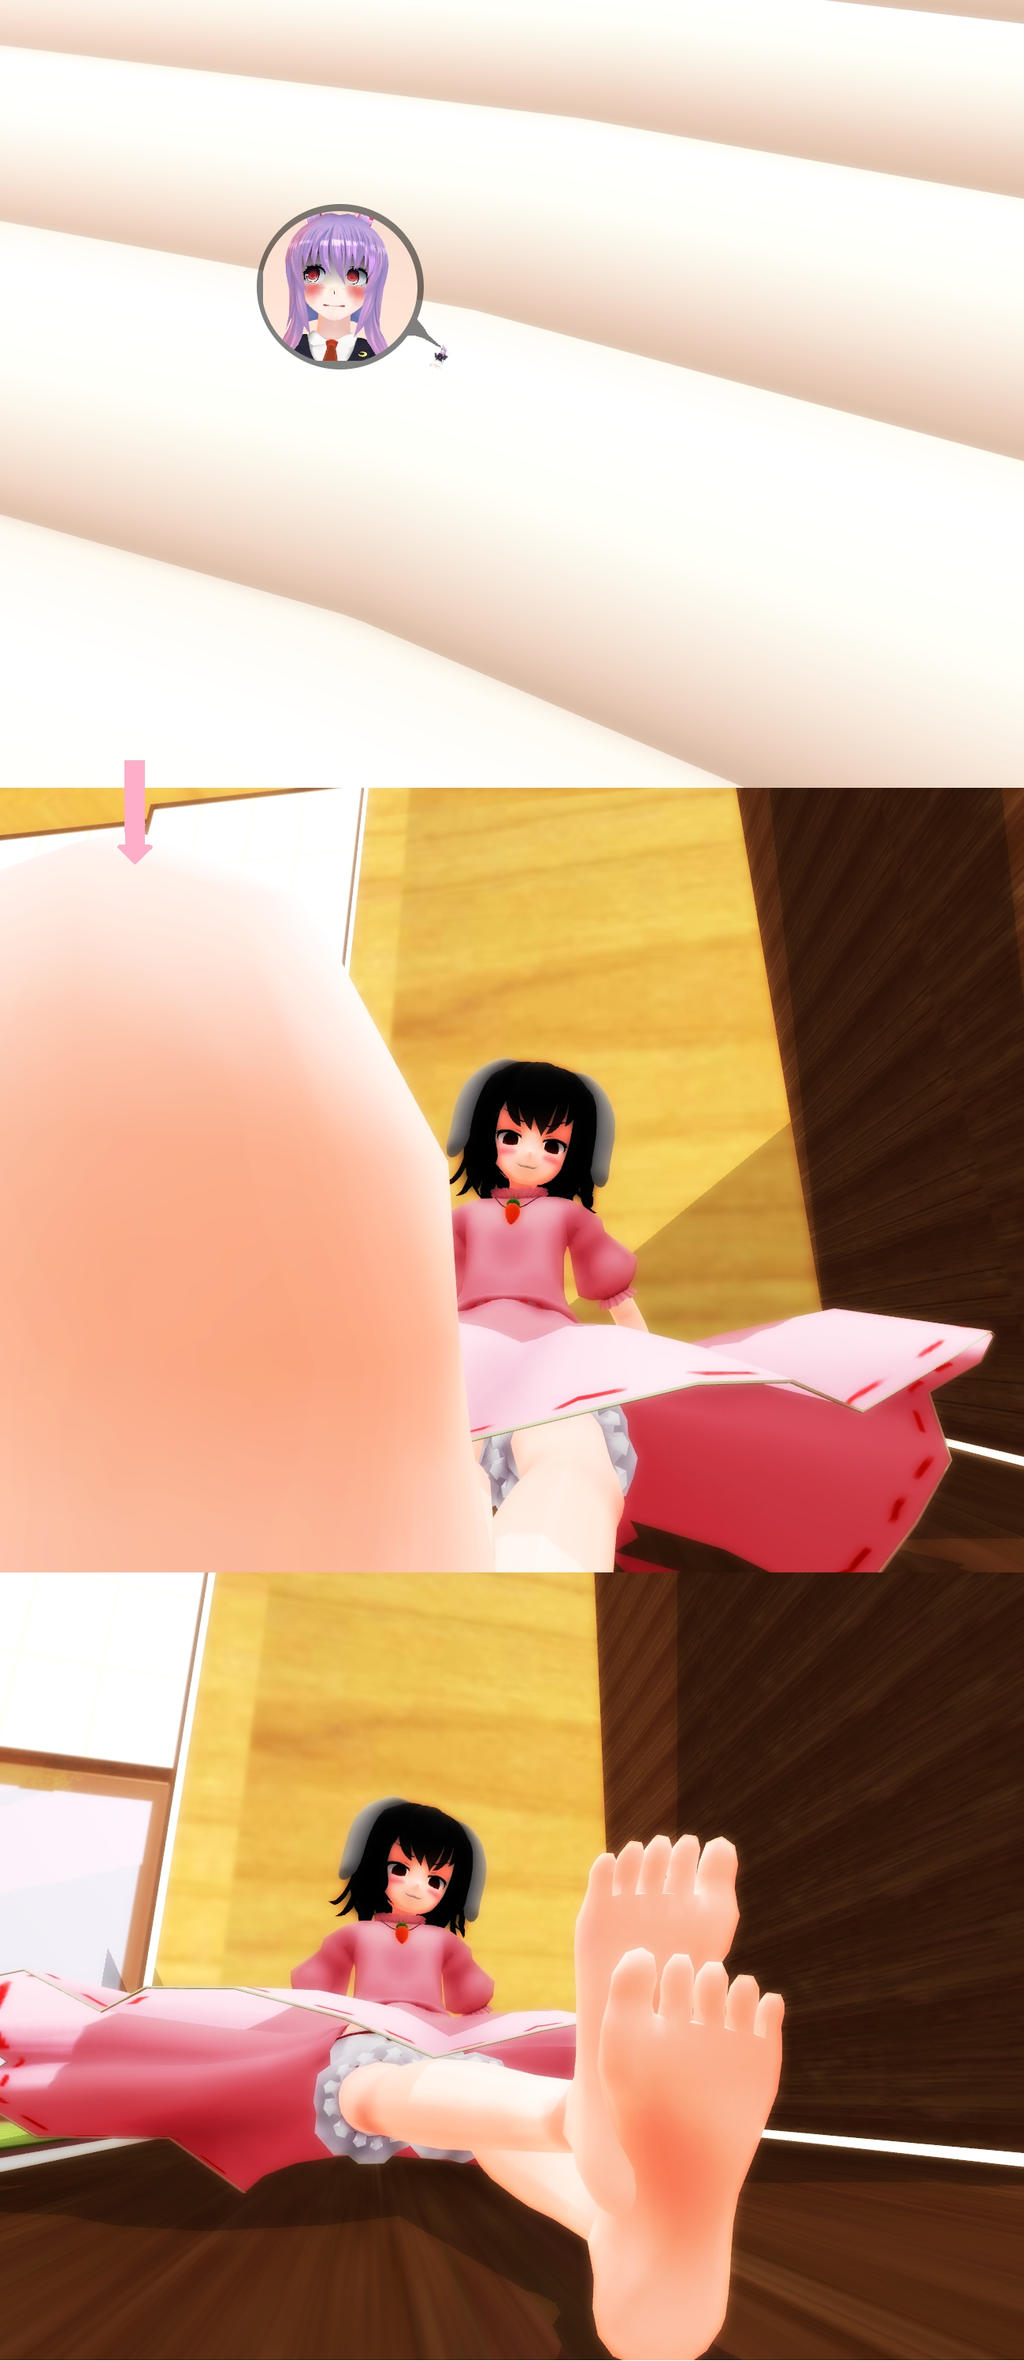 Tieny tiny on Tewi's toe by Koirvon